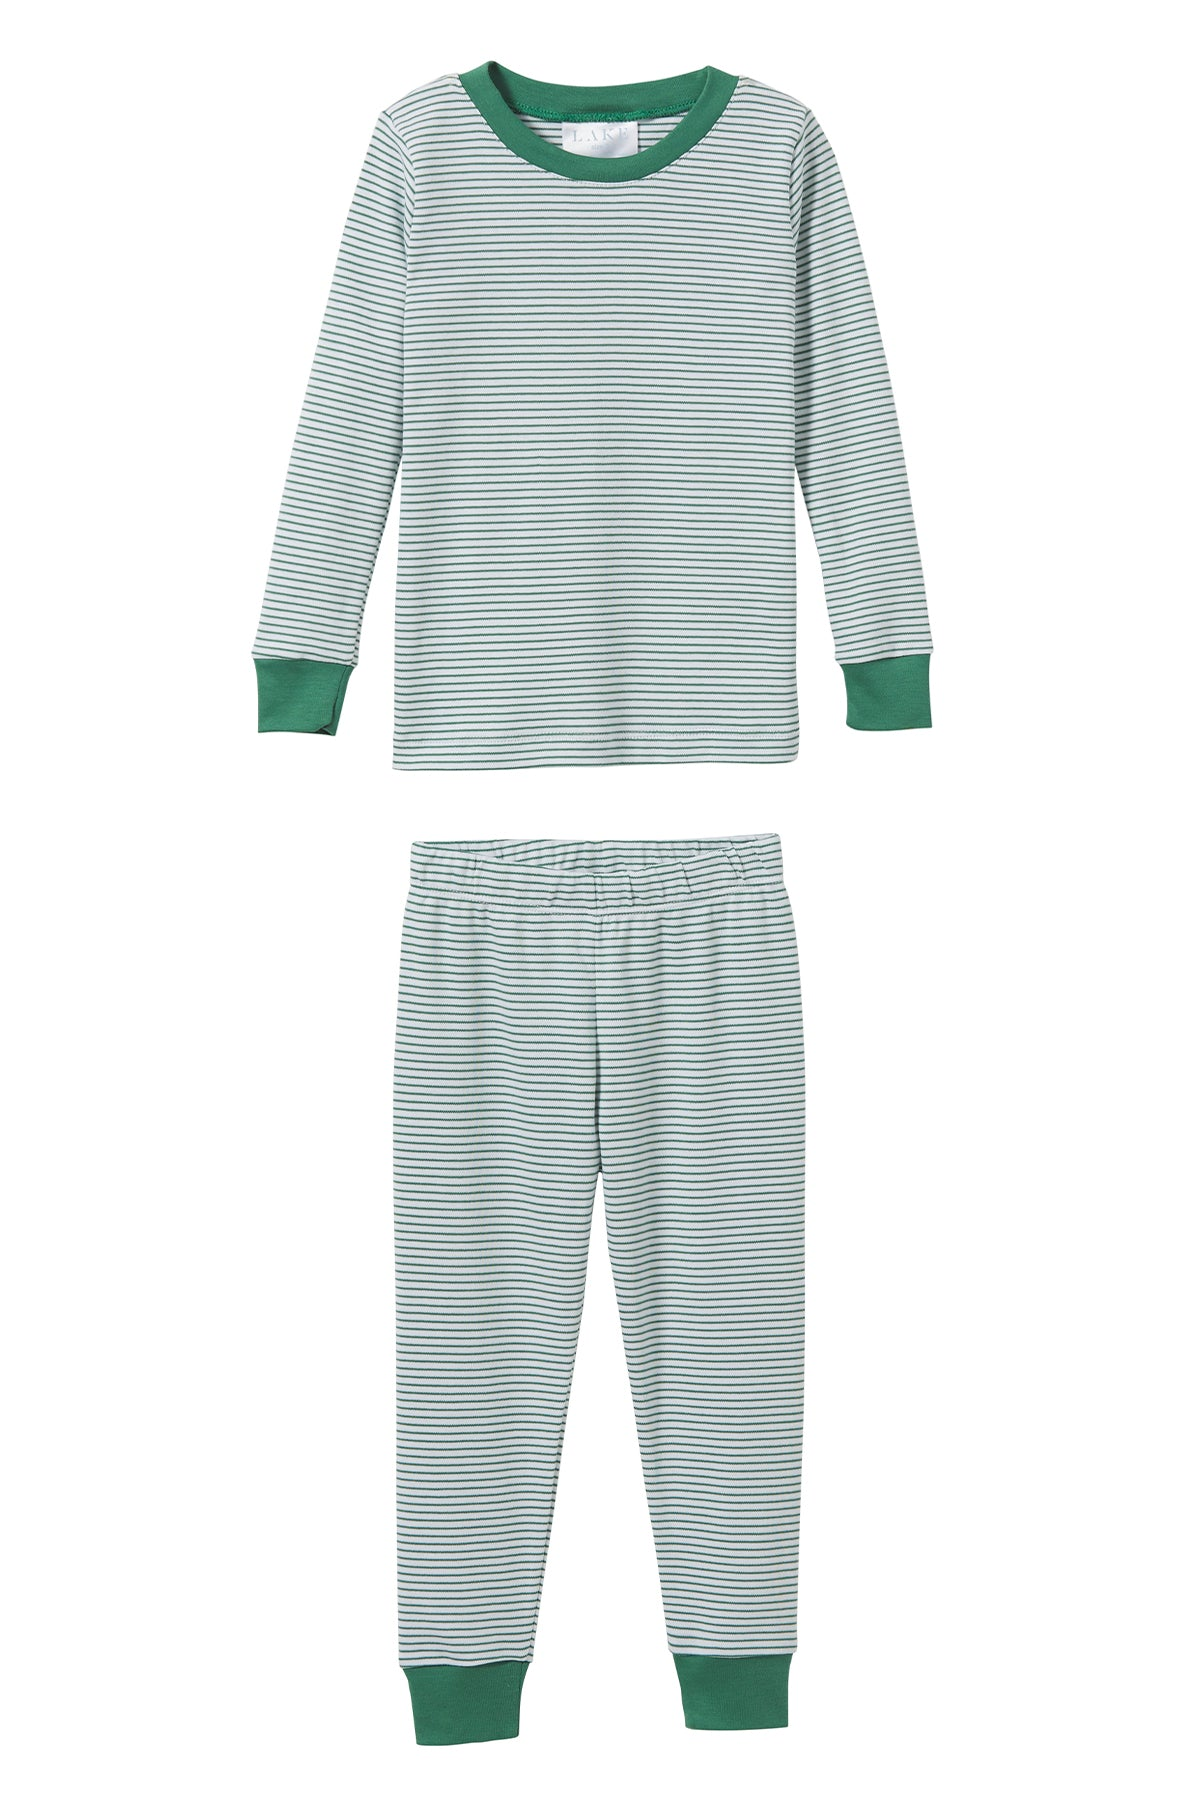 Kids Long-Long Set in Classic Green